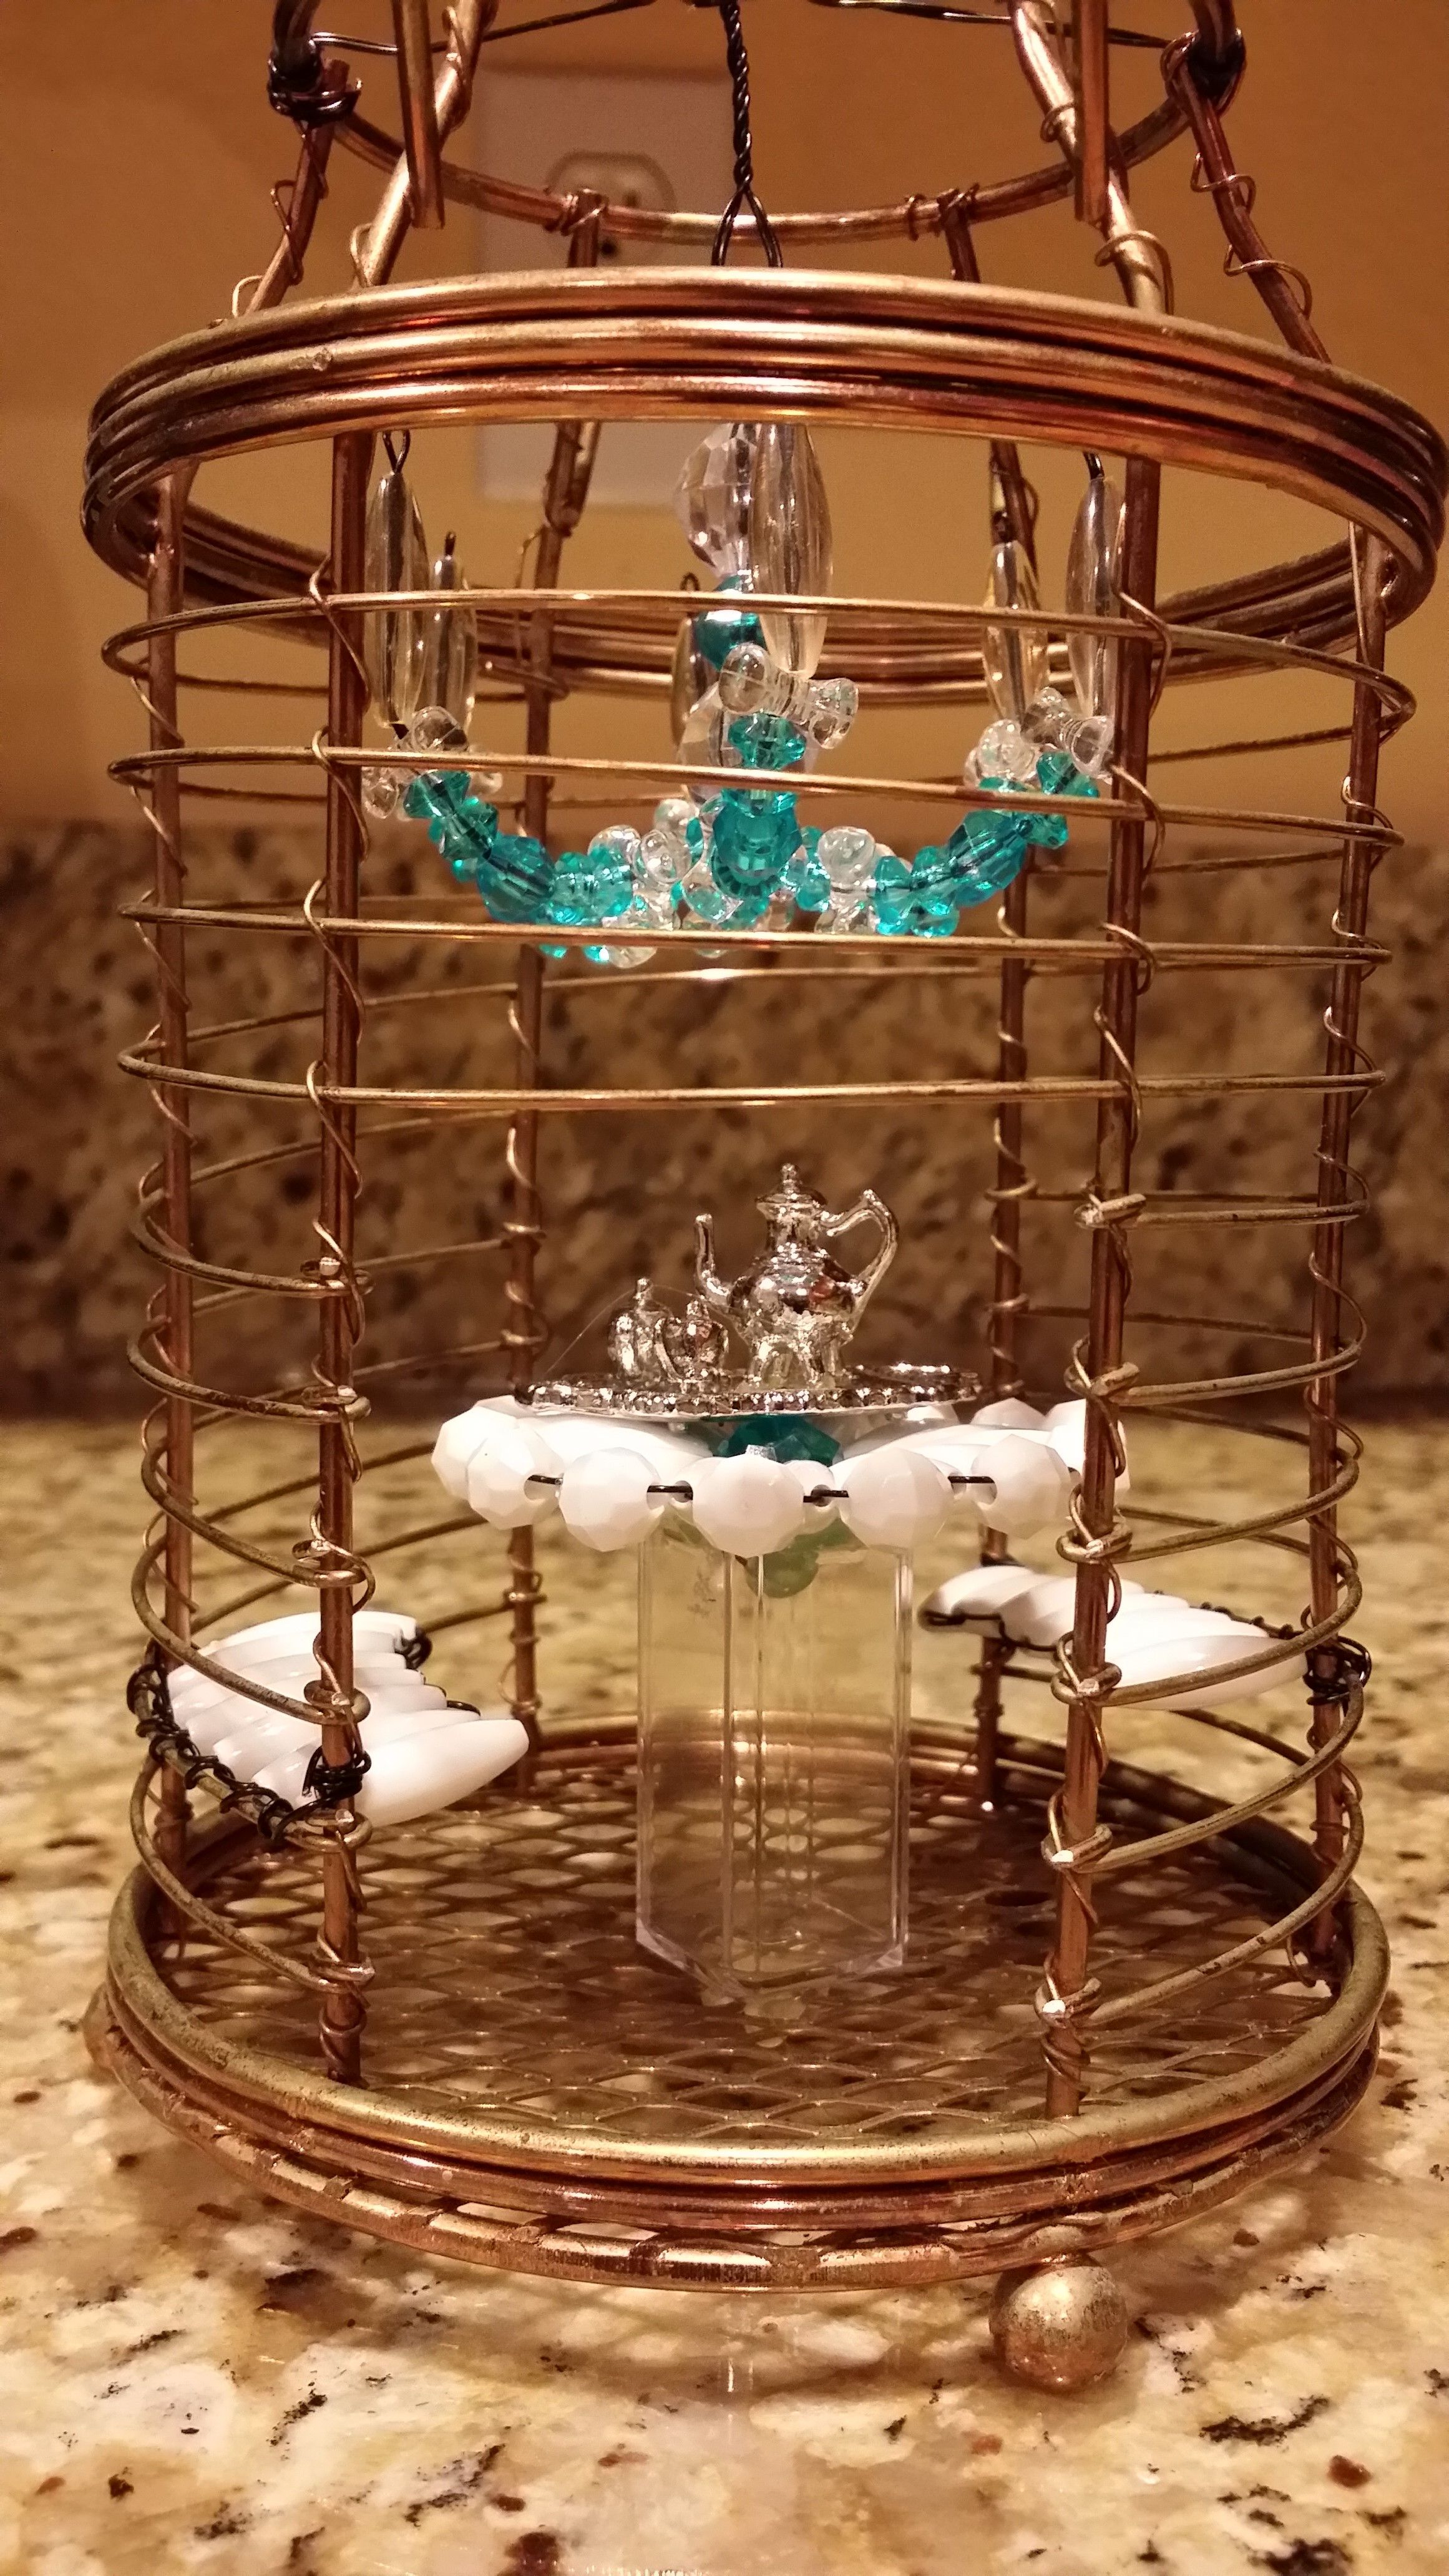 Diy fairy garden gazebo with chandelier table and bench made diy fairy garden gazebo with chandelier table and bench made out of beads and jewelry wire the table base is a clear lipstick cap arubaitofo Choice Image